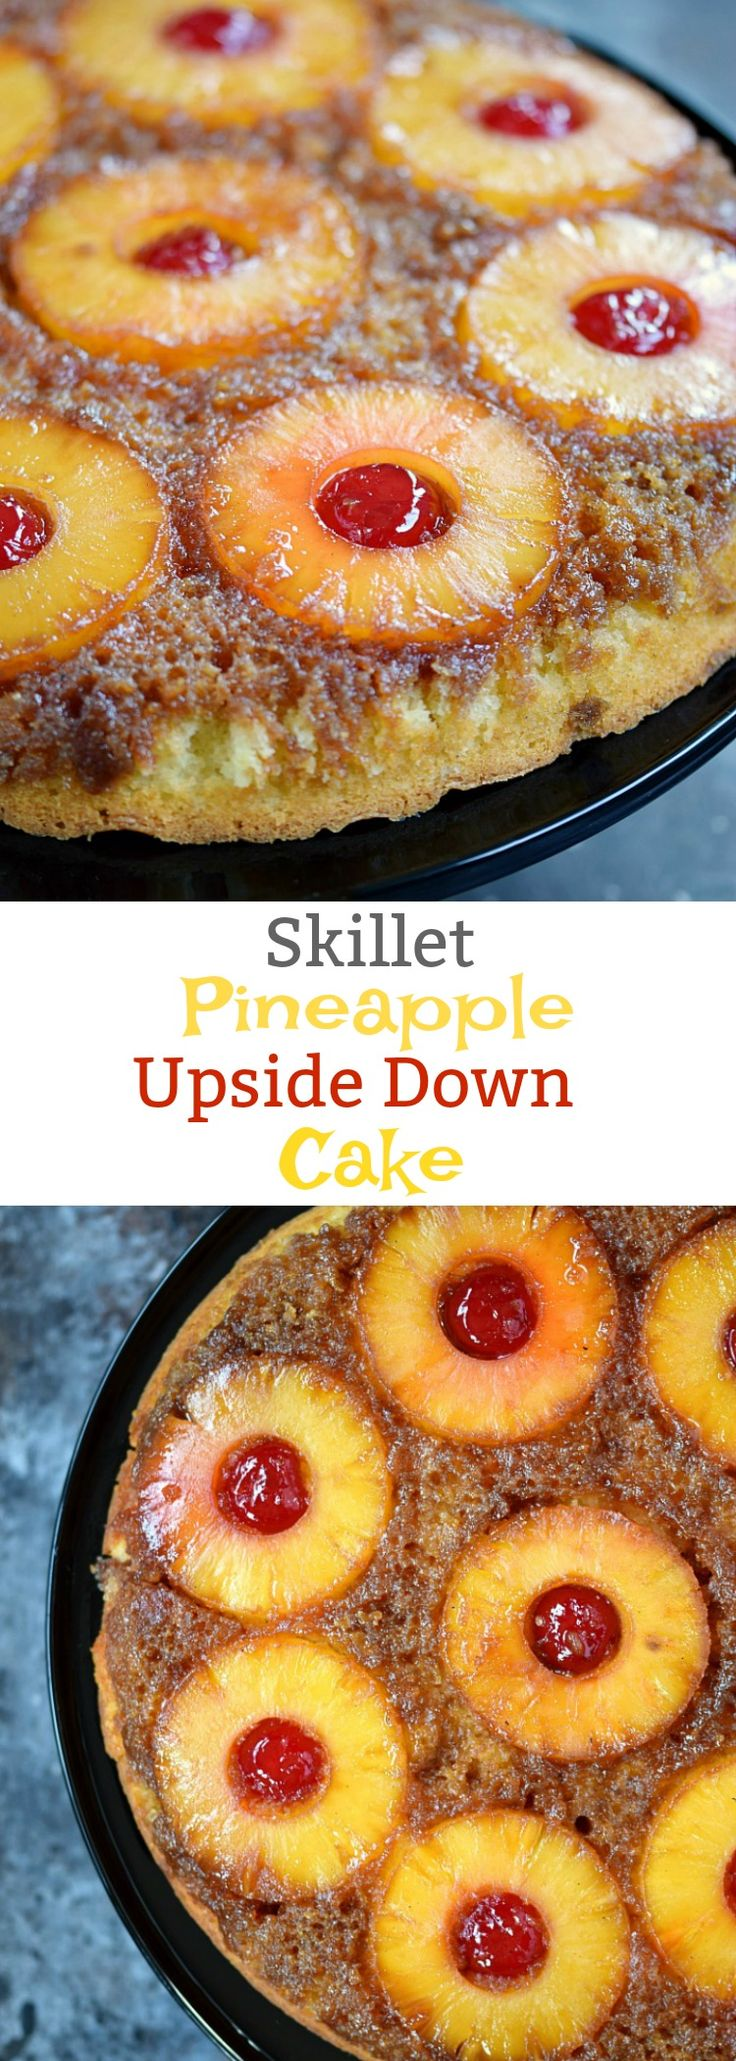 Your next luau will not be complete without this delicious Skillet Pineapple Upside-Down Cake that has a fun twist to take it to the next level! cookingwithcurls.com